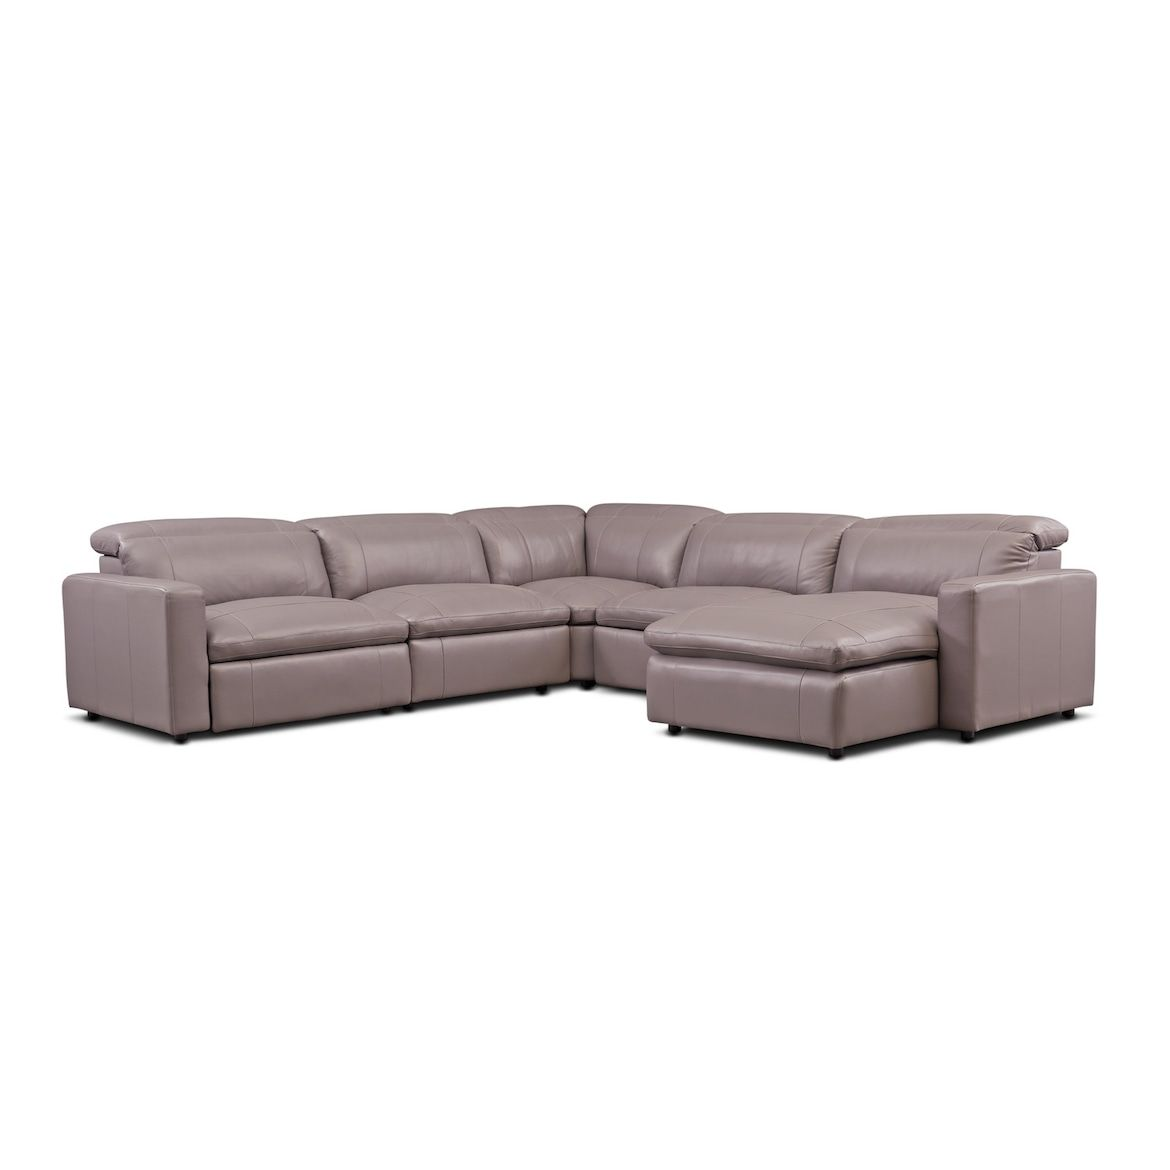 Best Happy 5 Piece Dual Power Reclining Sectional With Chaise 400 x 300